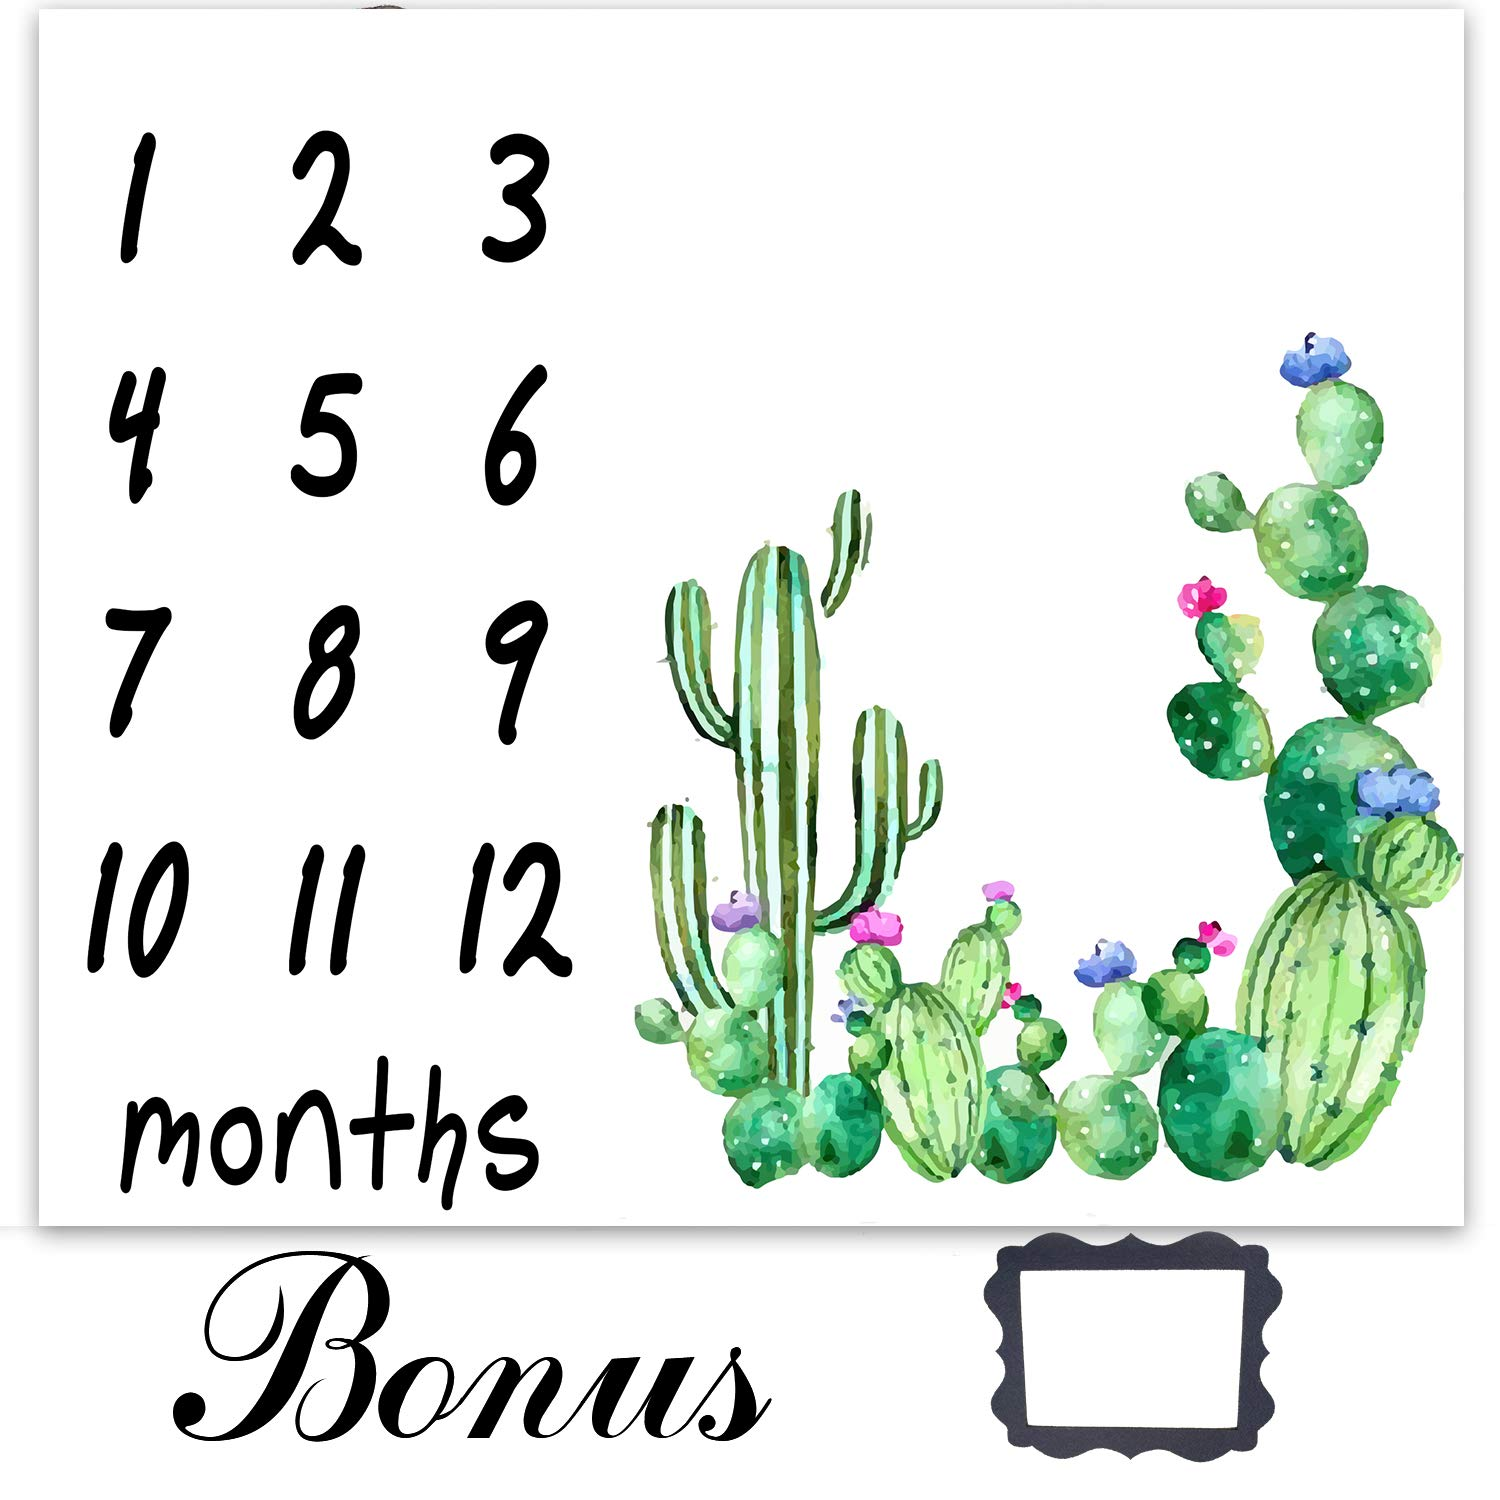 EARVO 47x40 inches Cactus Baby Photography Blanket, Newborn Monthly Milestone Blanket, Memory Blanket for New Moms Growing Infants 0-12 Months, Baby Boy Girl Shower Blanket EADS473